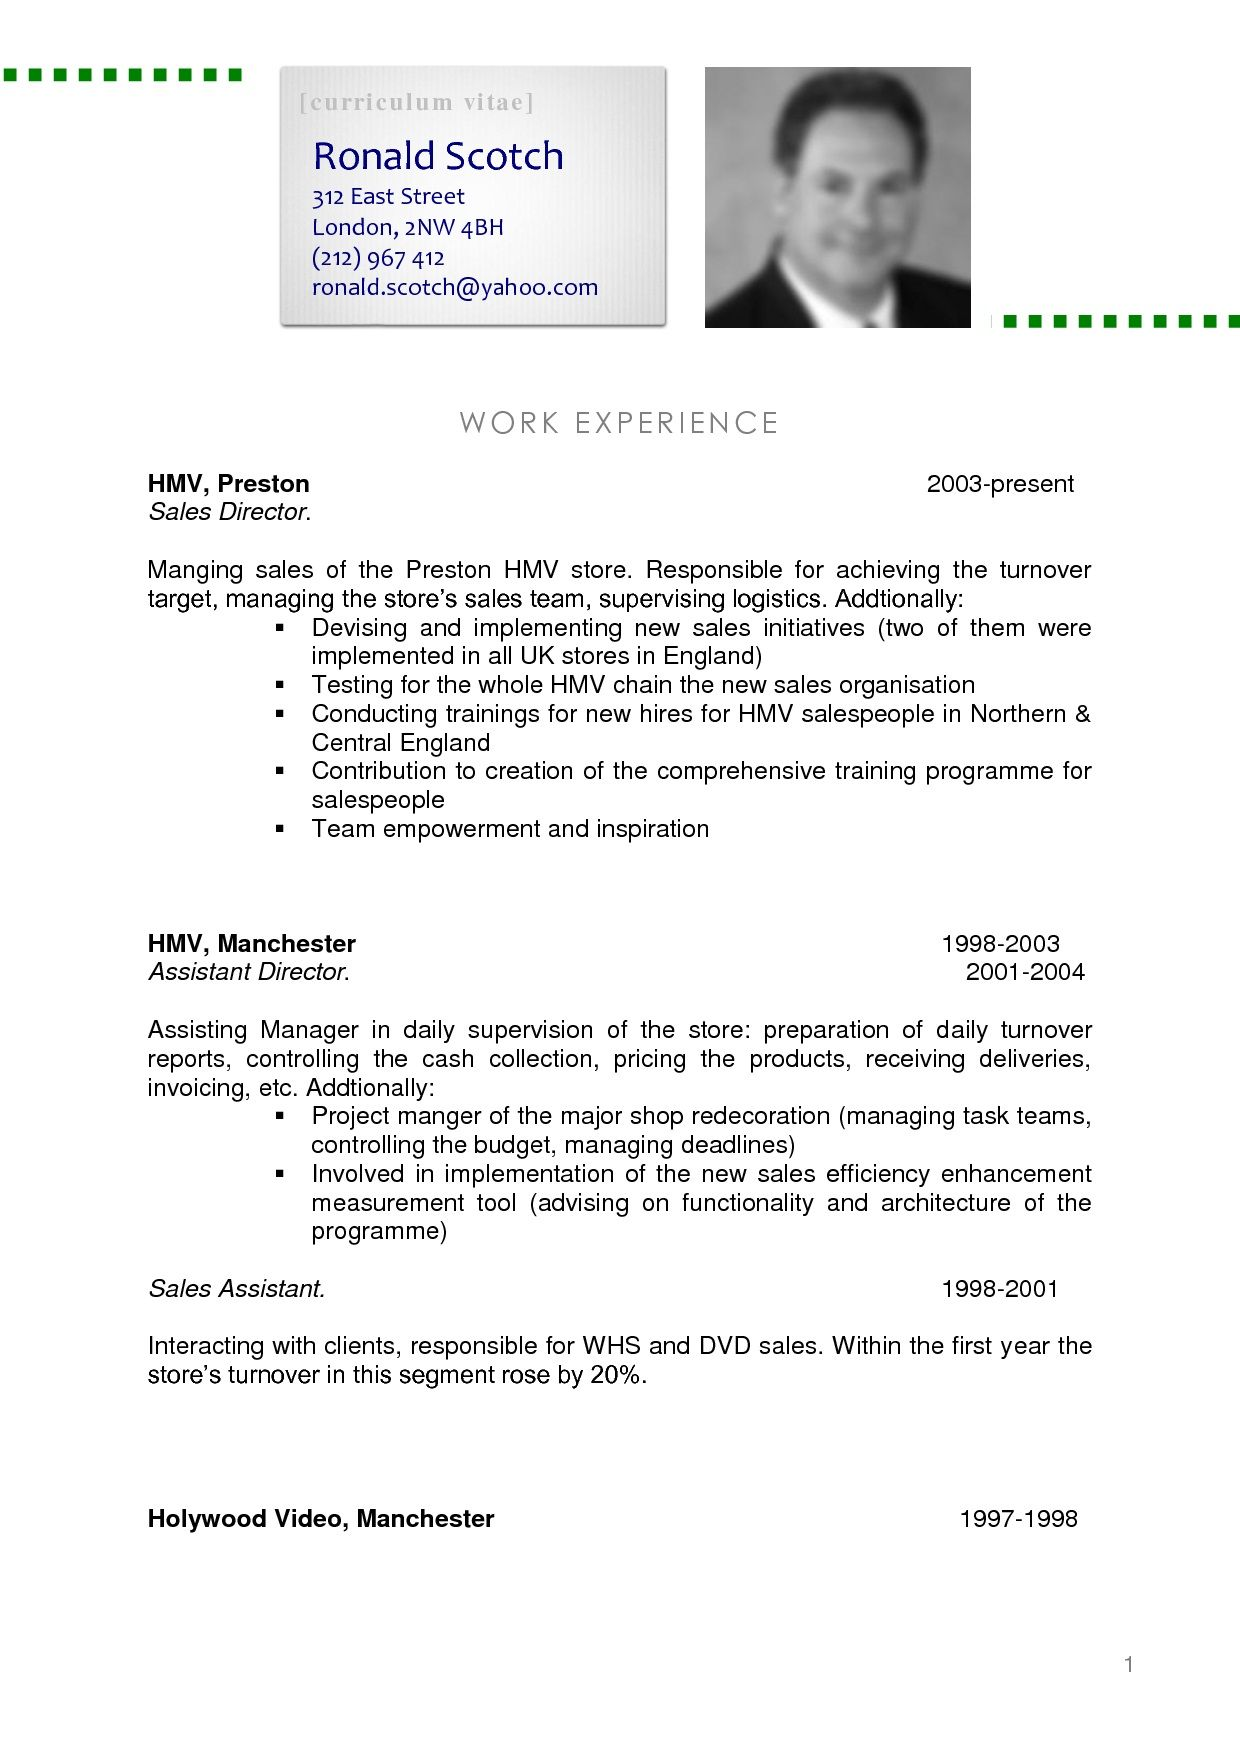 Standard Resume Format Professional Curriculum Vitae Samples  Professional Curriculum